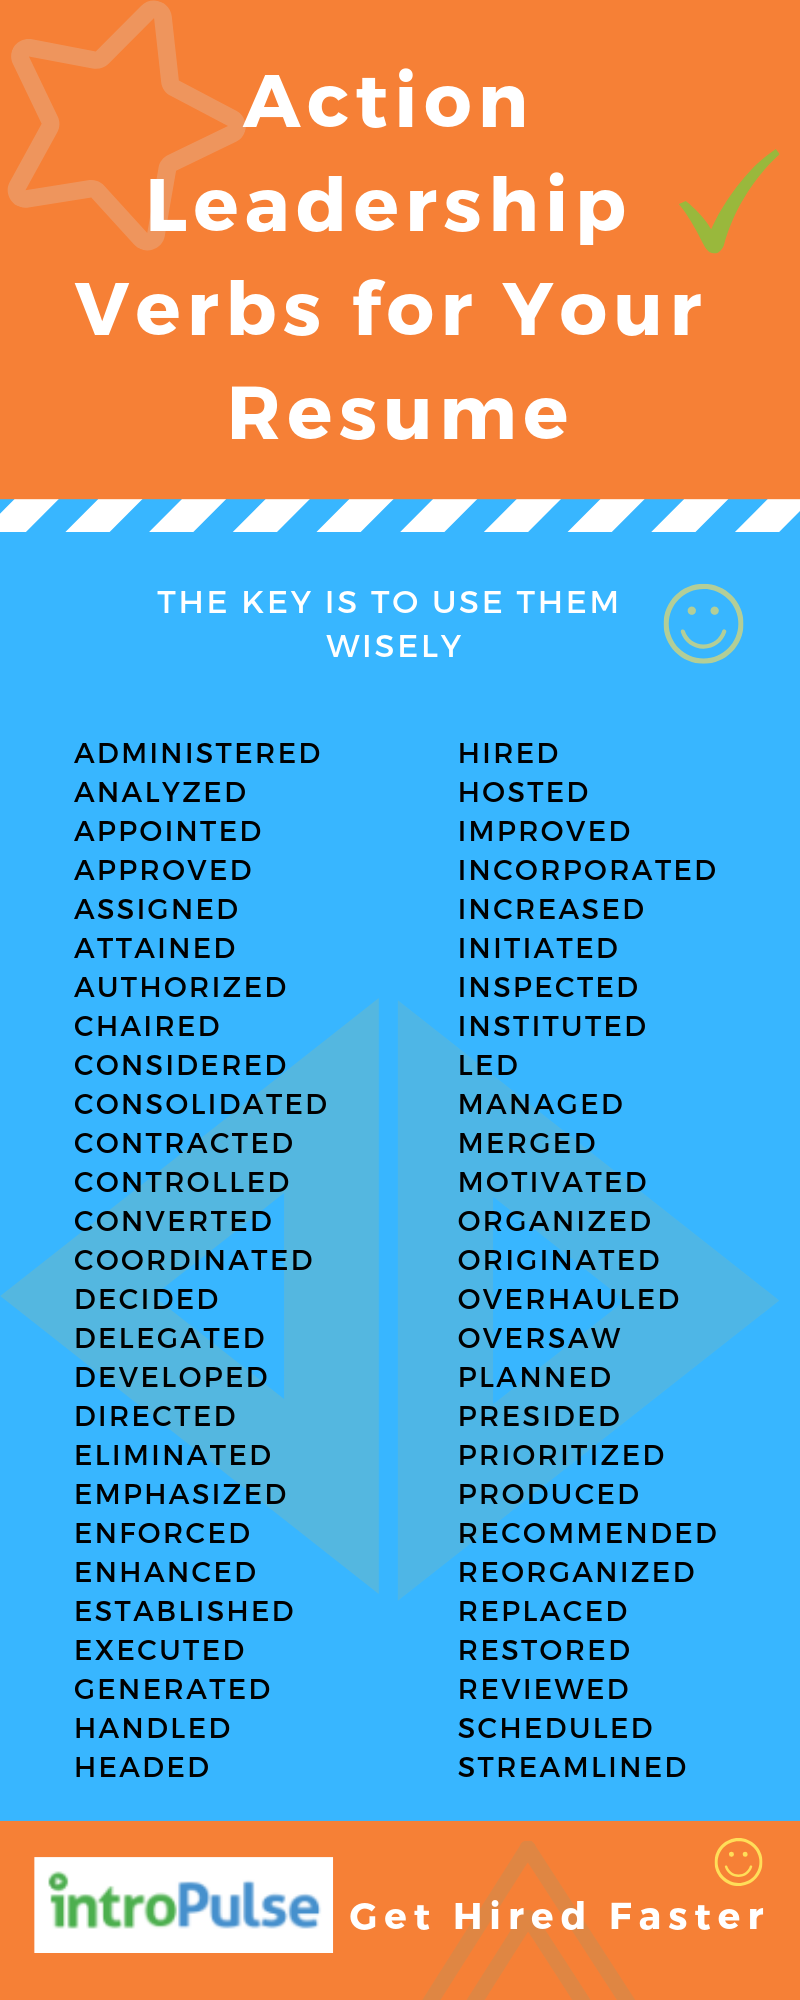 action leadership verbs for your resume